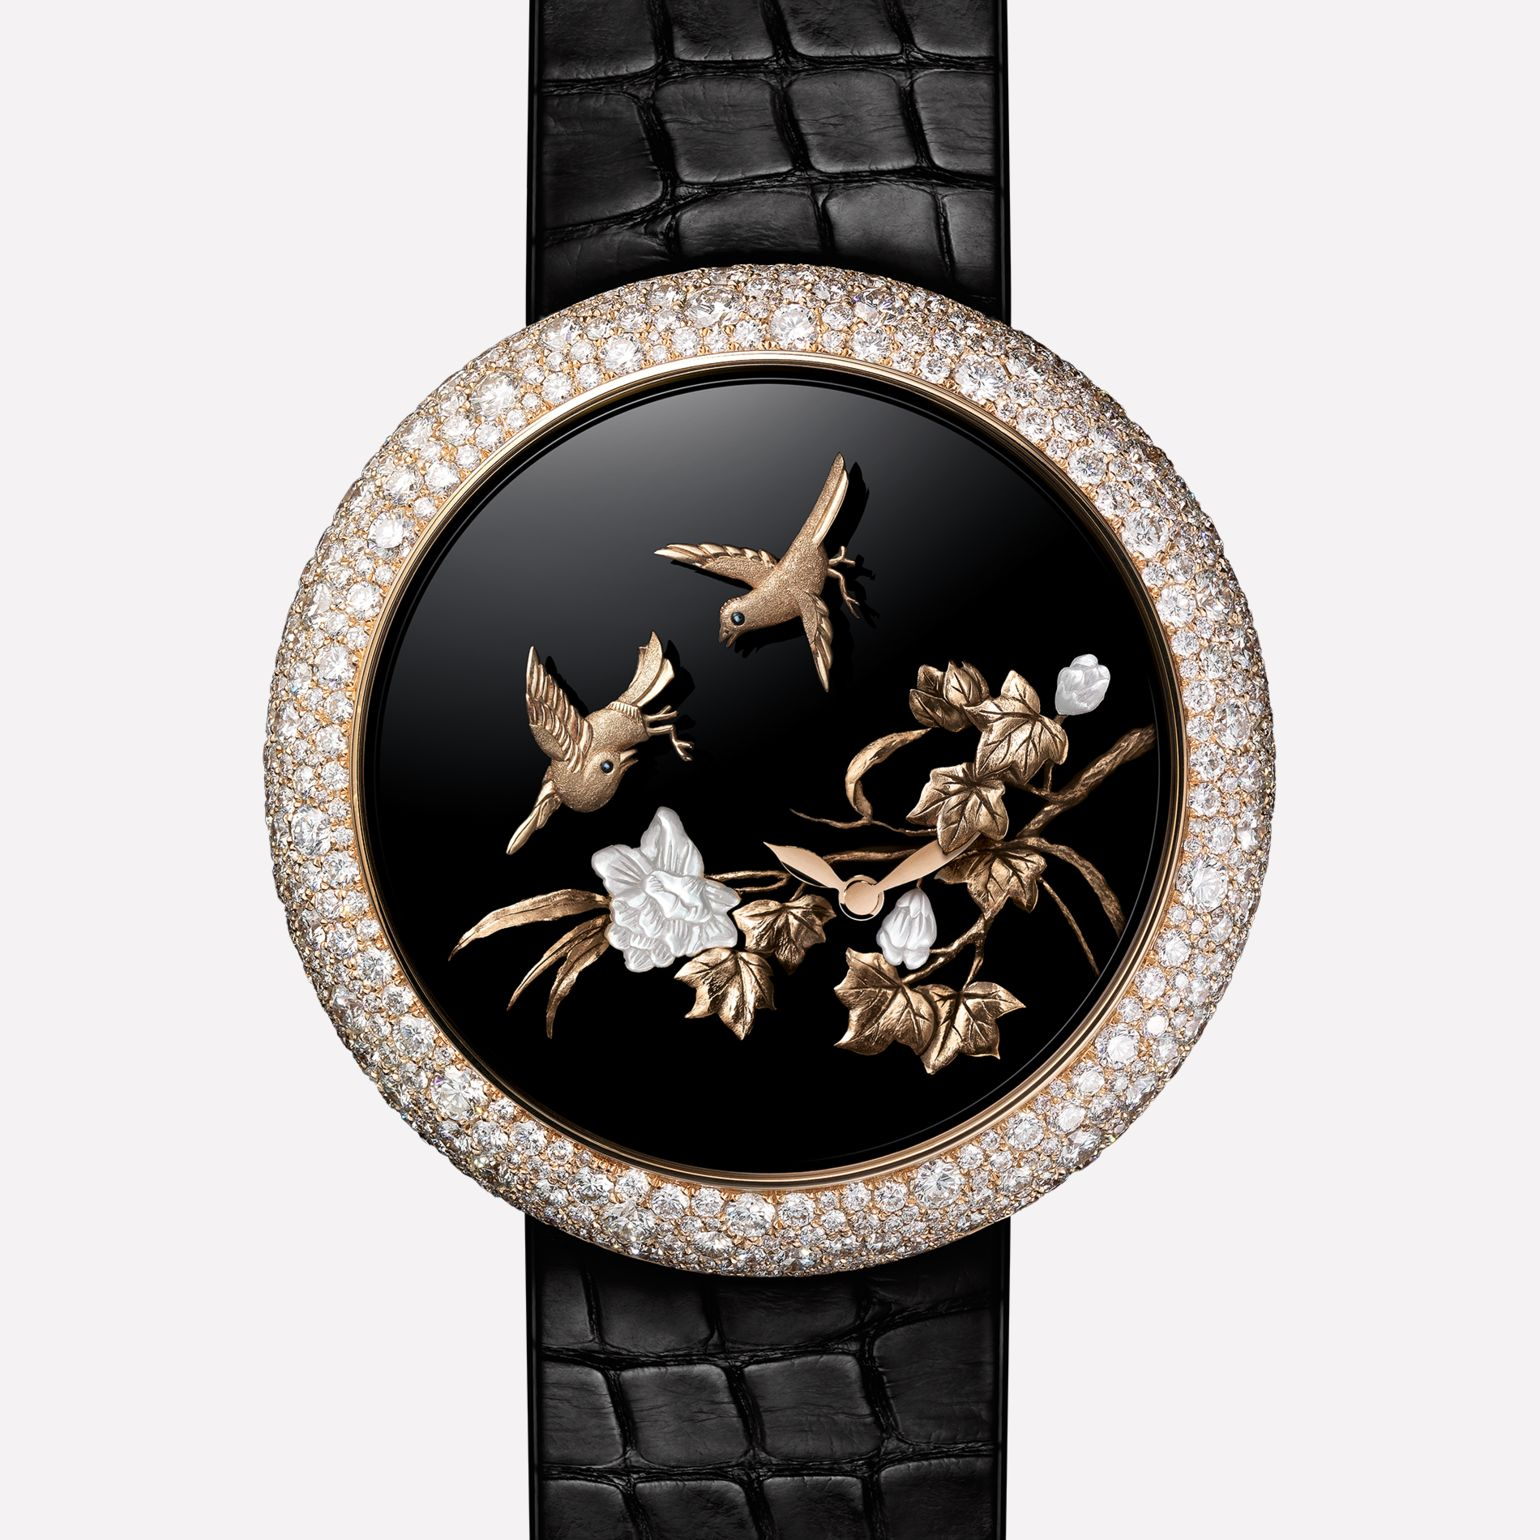 Mademoiselle Privé Watch Les espiègles : Coromandel Flying Birds created using the sculpted gold technique